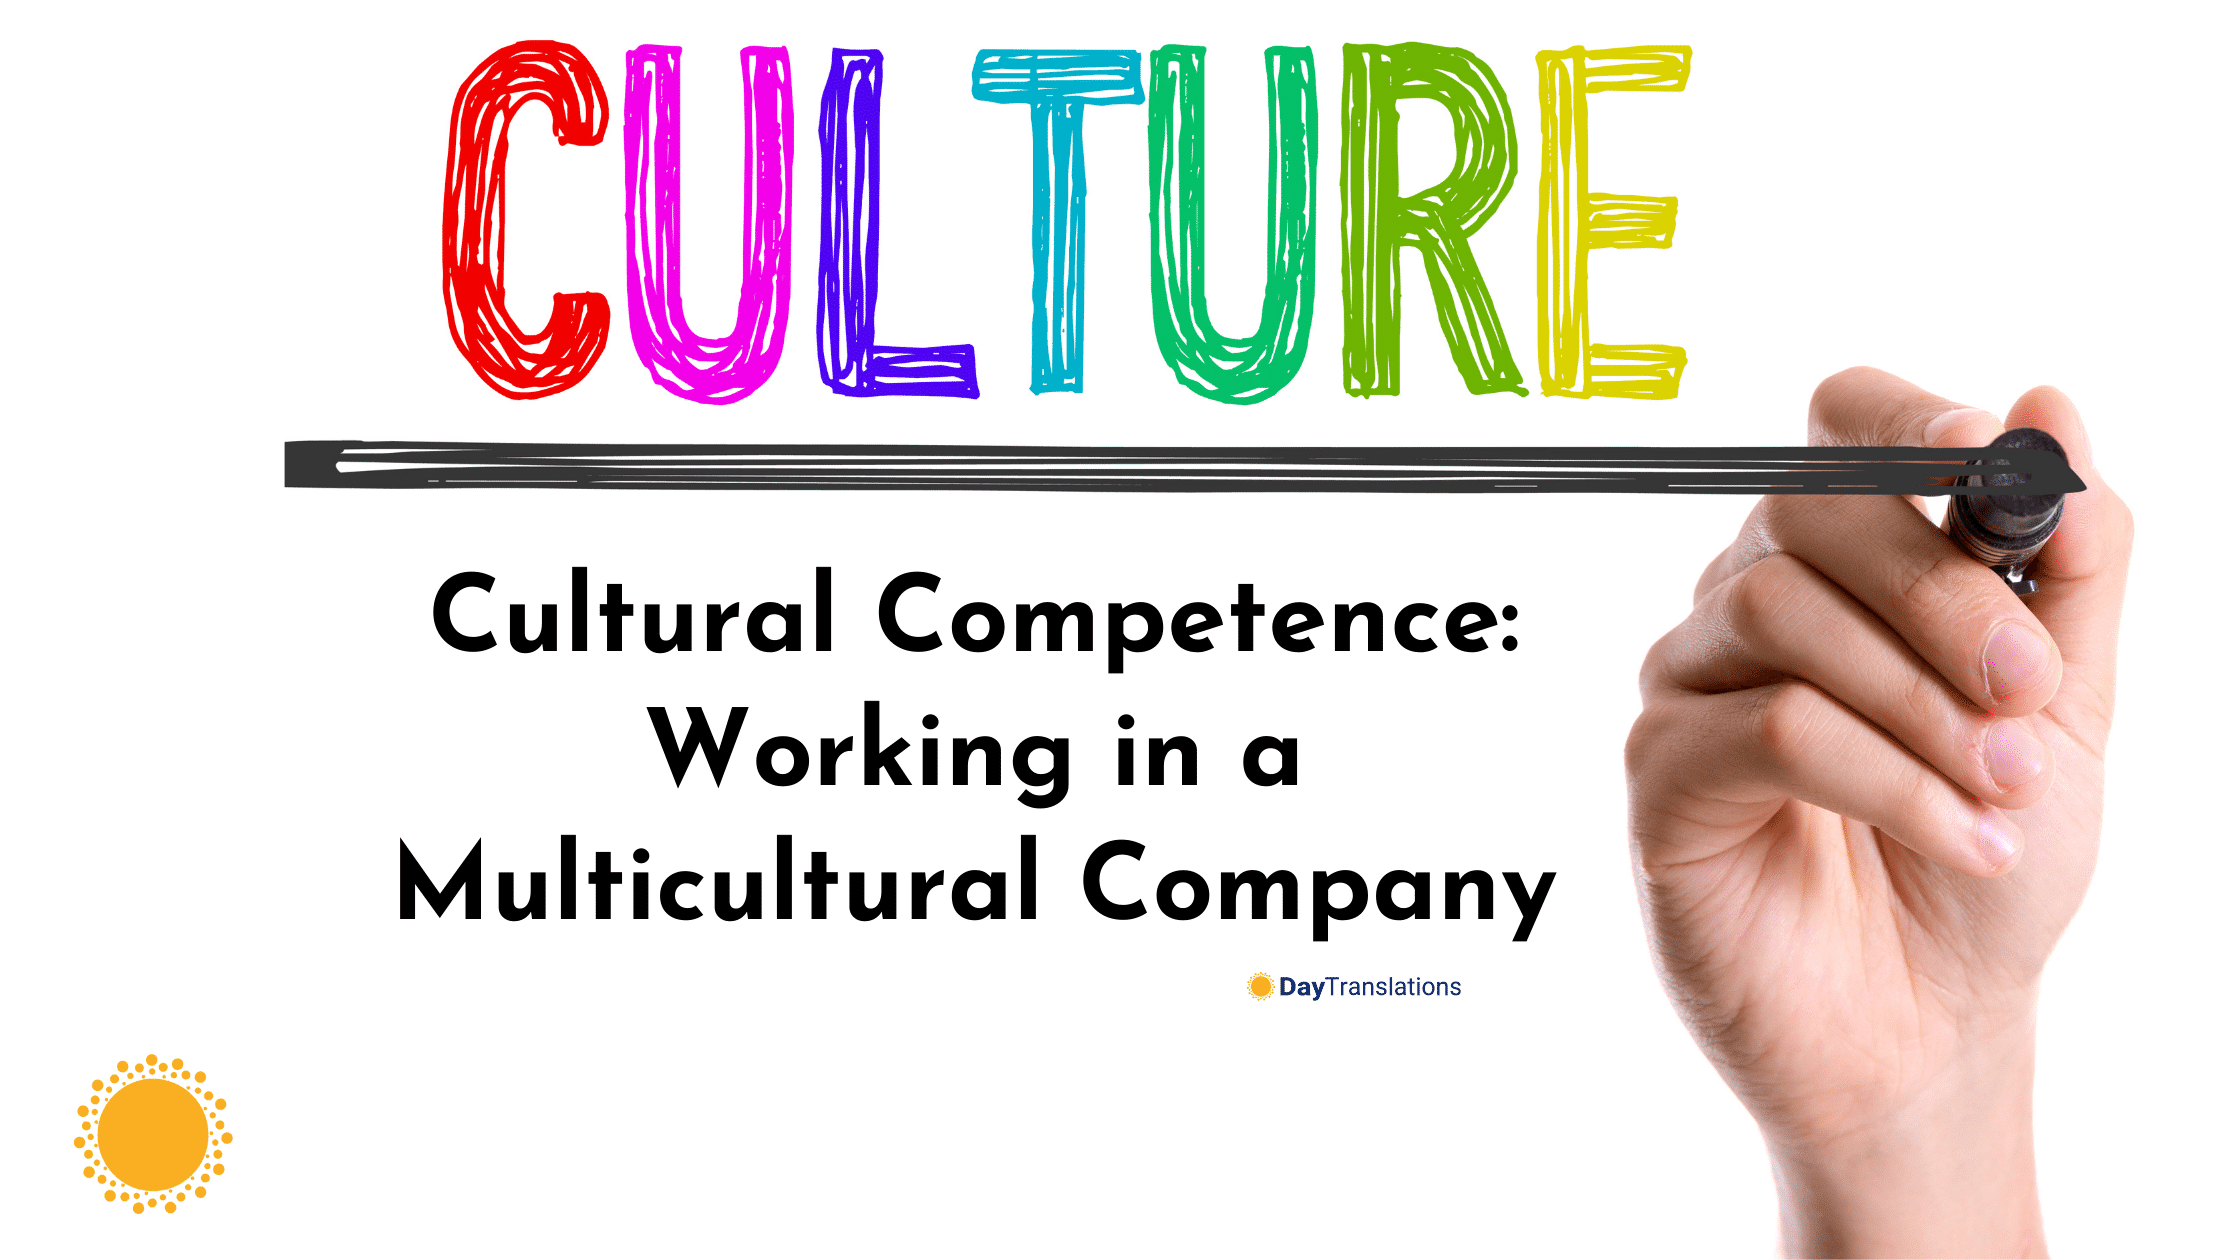 Cultural Competence: Working in a Multicultural Company